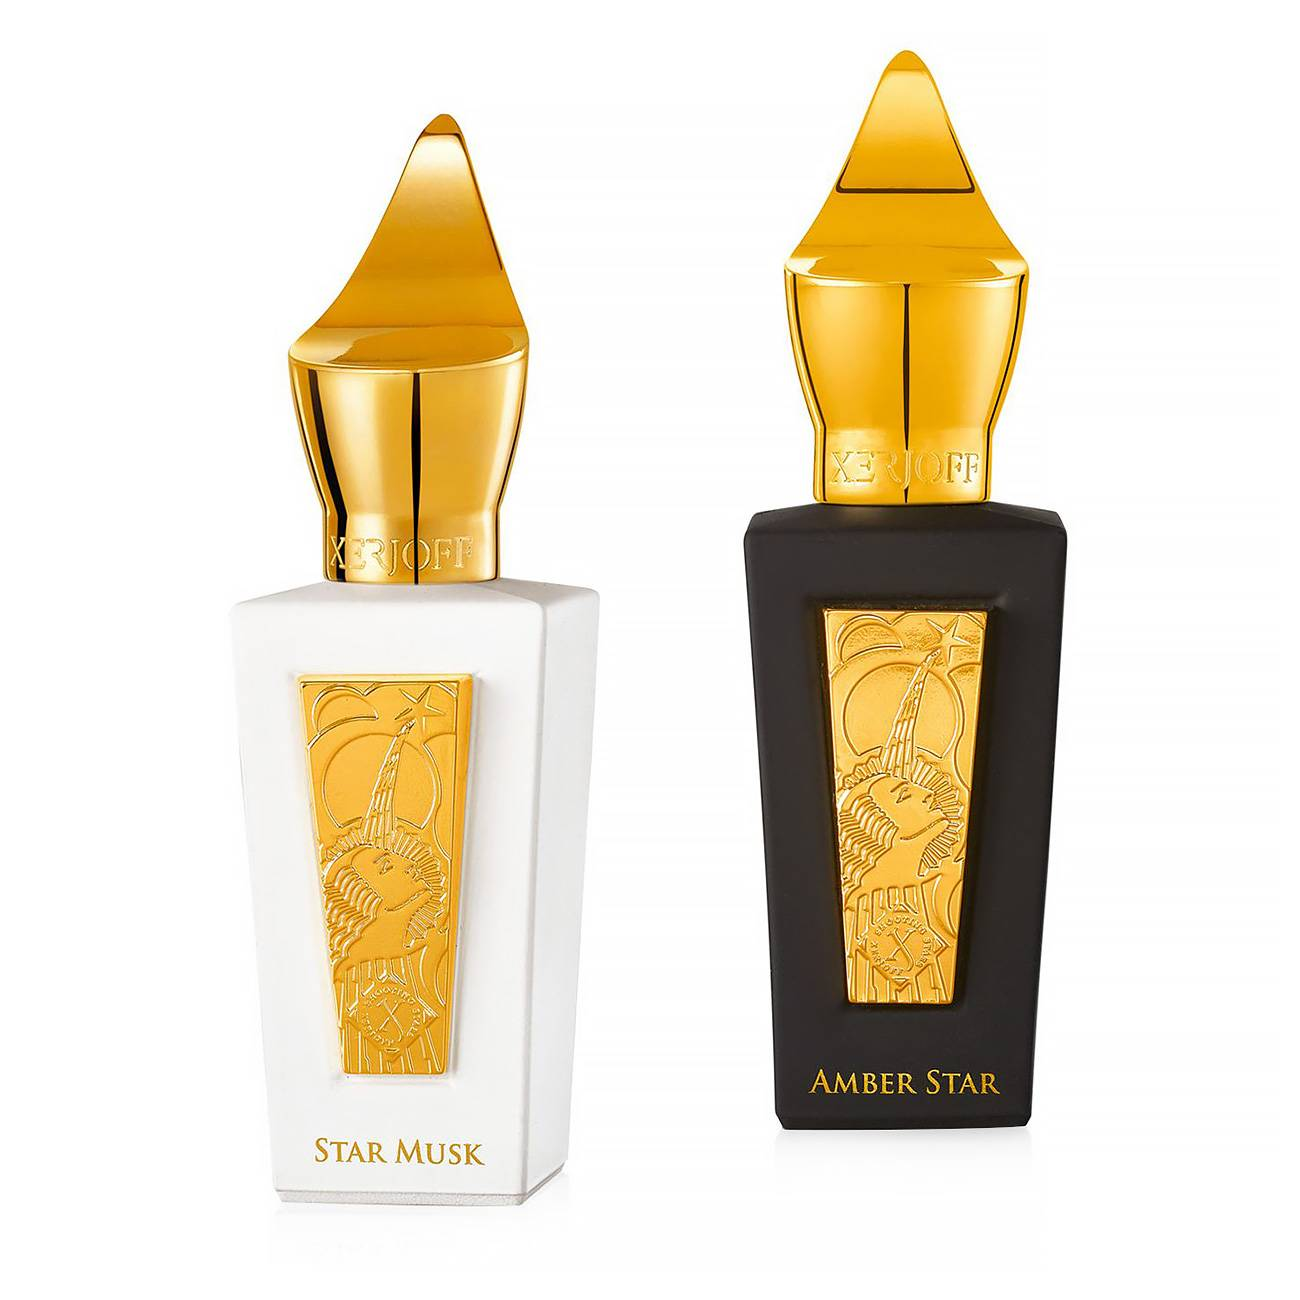 AMBER STAR & STAR MUSK SET 100ml